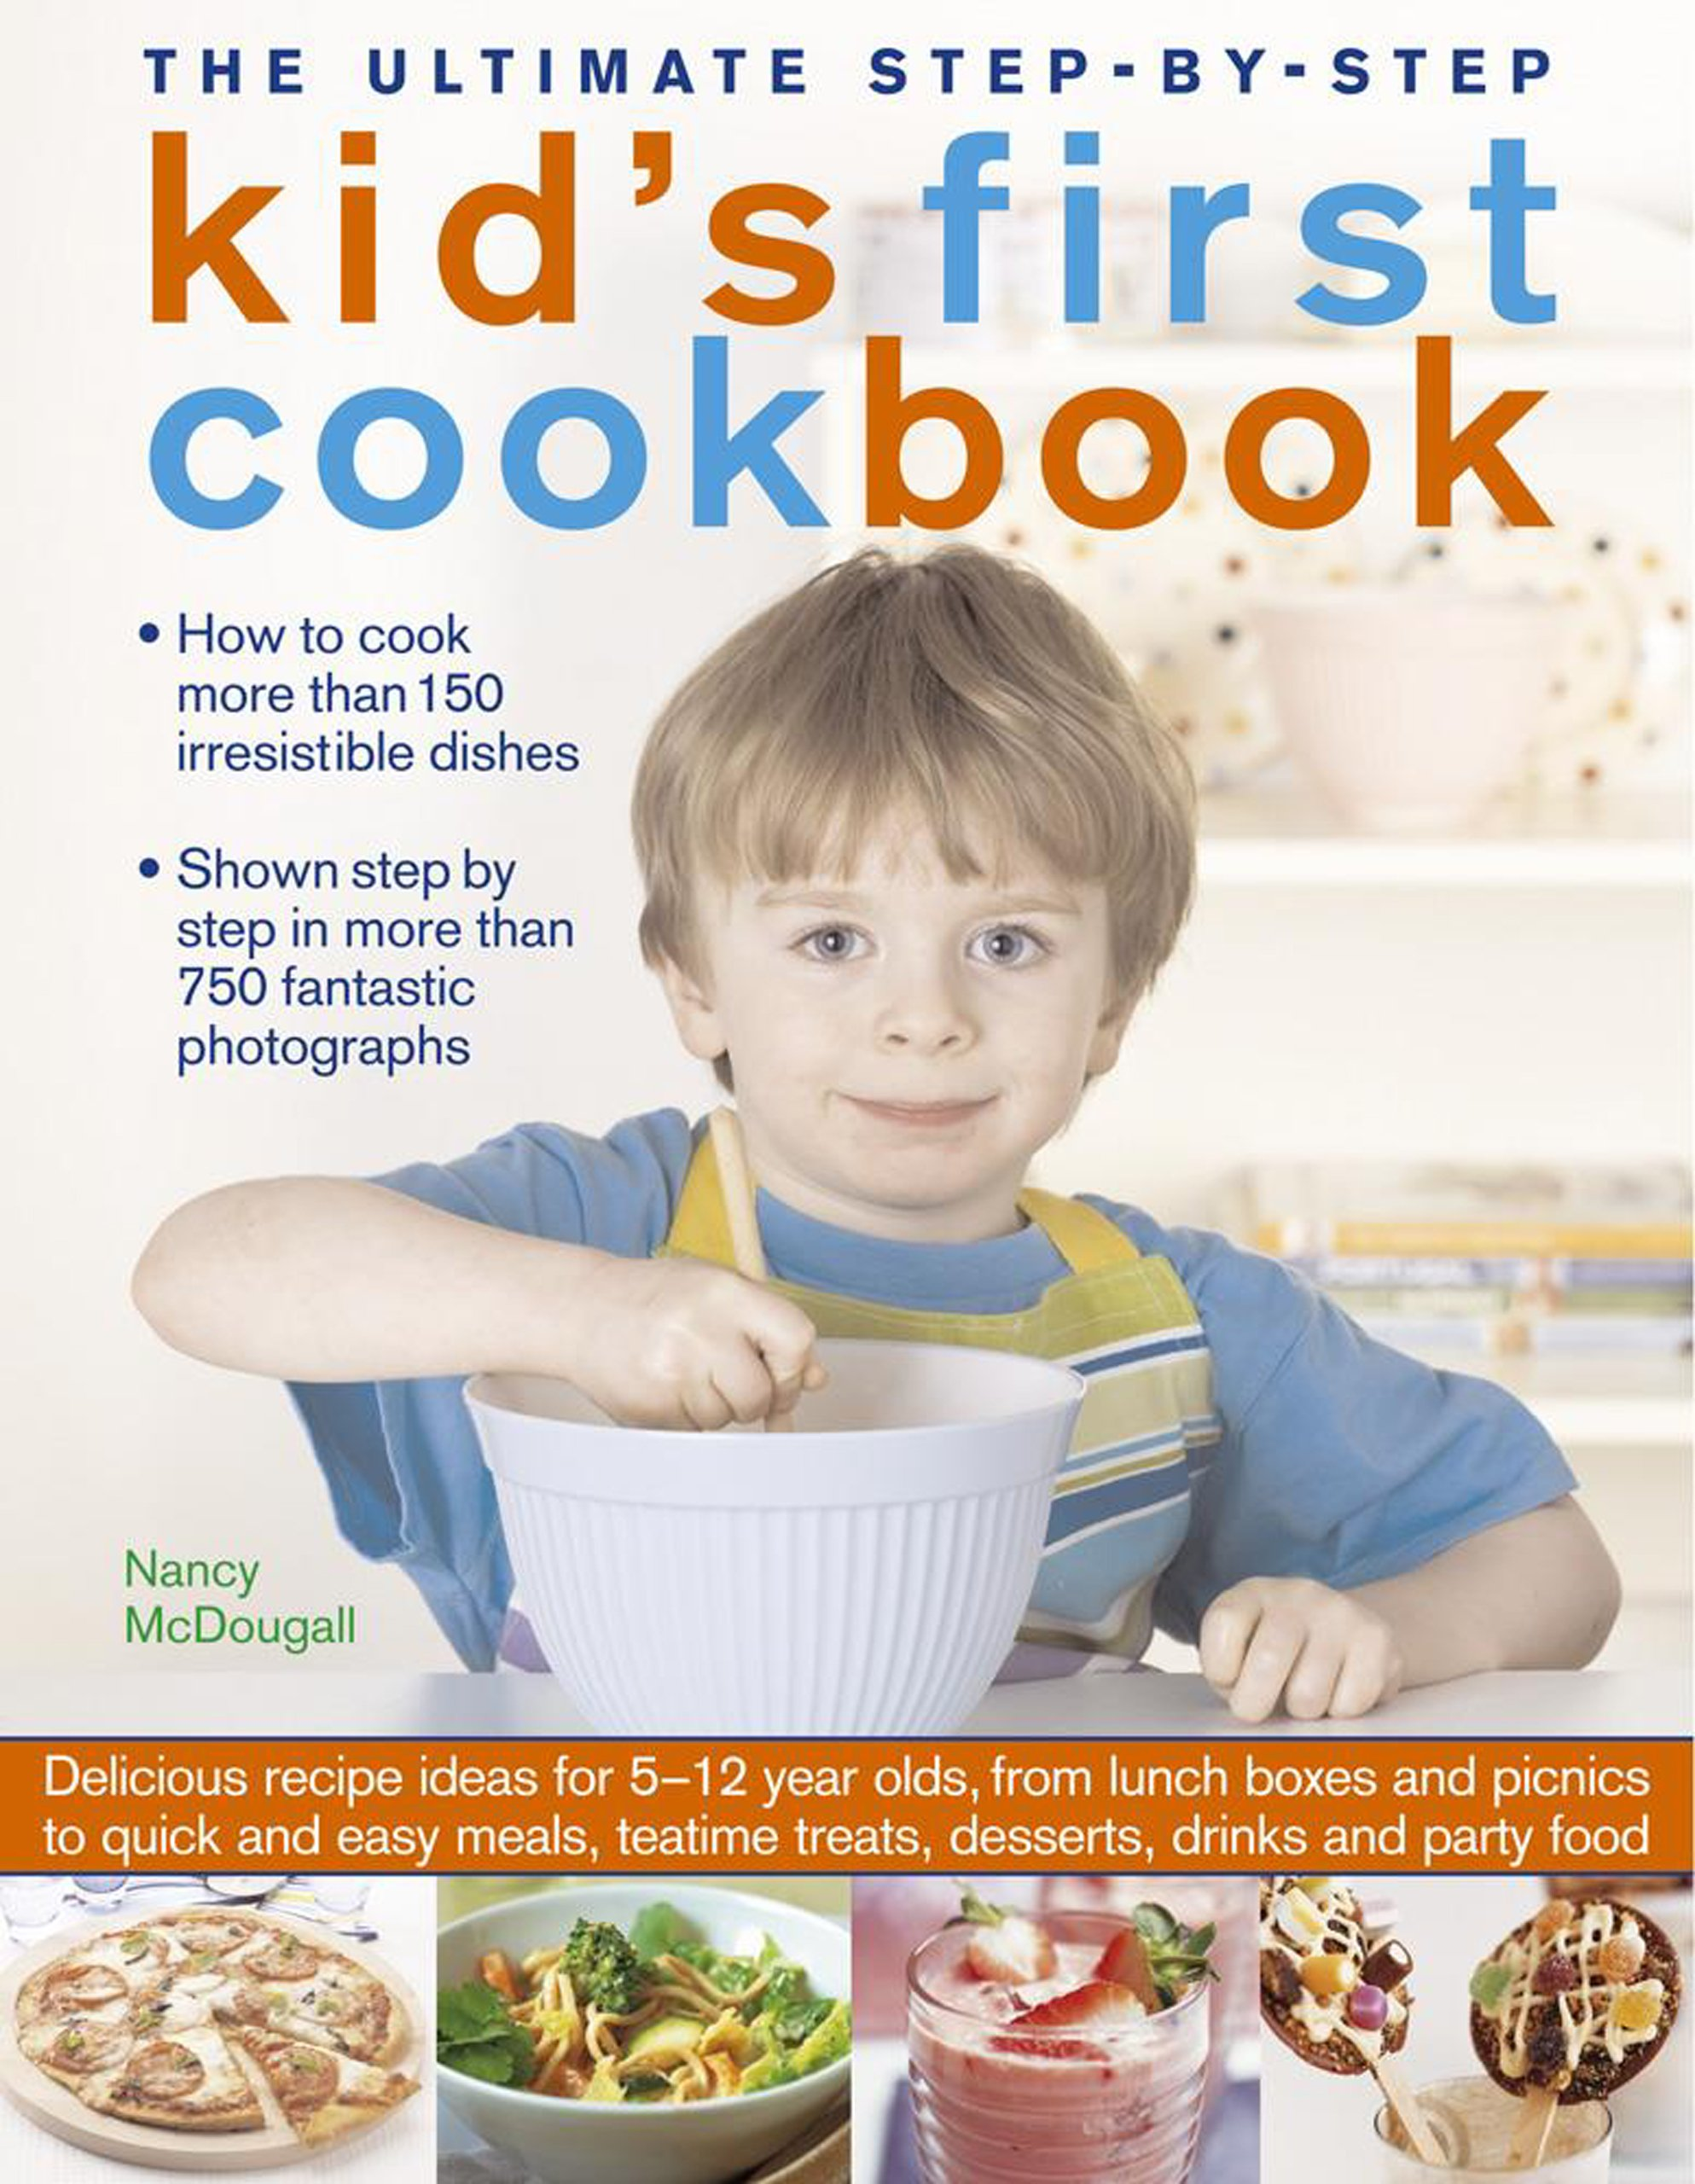 The ultimate step by step kids first cookbook delicious recipe the ultimate step by step kids first cookbook delicious recipe ideas for 5 12 year olds from lunch boxes and picnics to quick and easy meals forumfinder Gallery